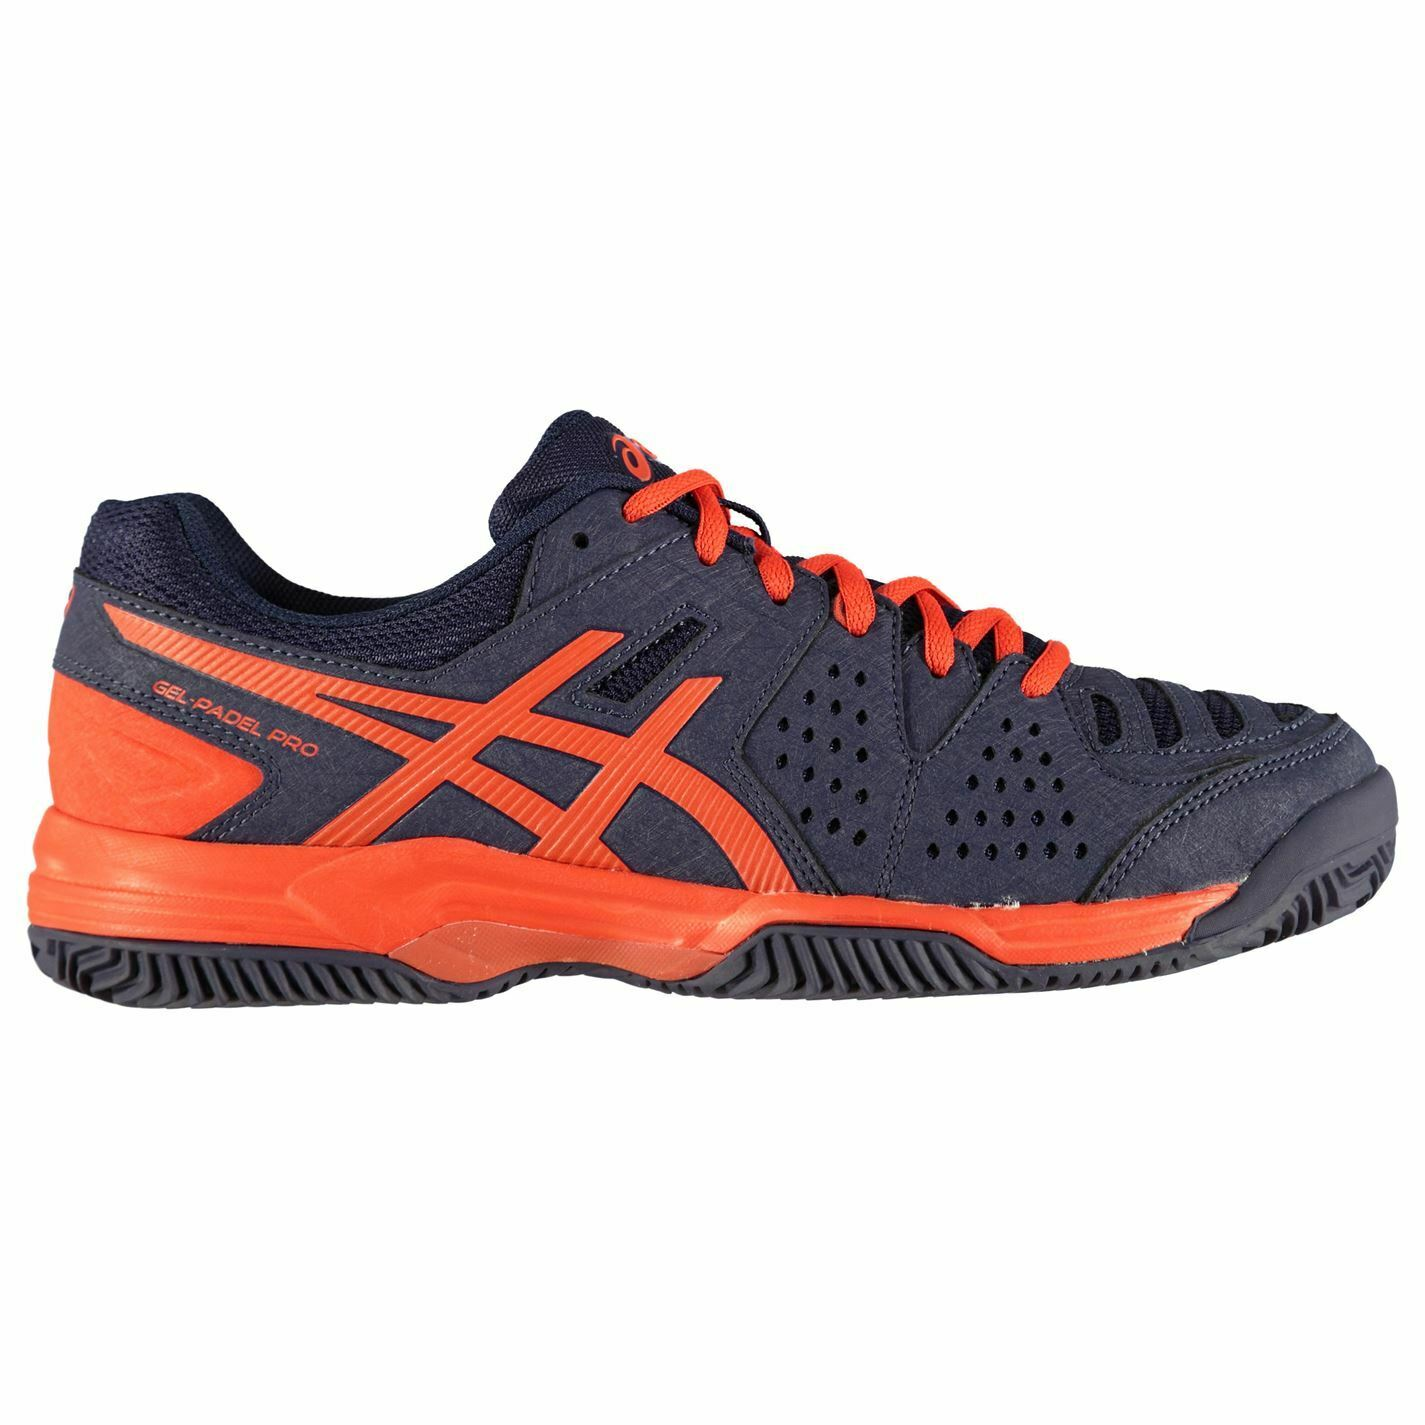 Asics Womens Gel Padel Pro 3 SG Tennis shoes Lace Up Padded Ankle Collar Mesh